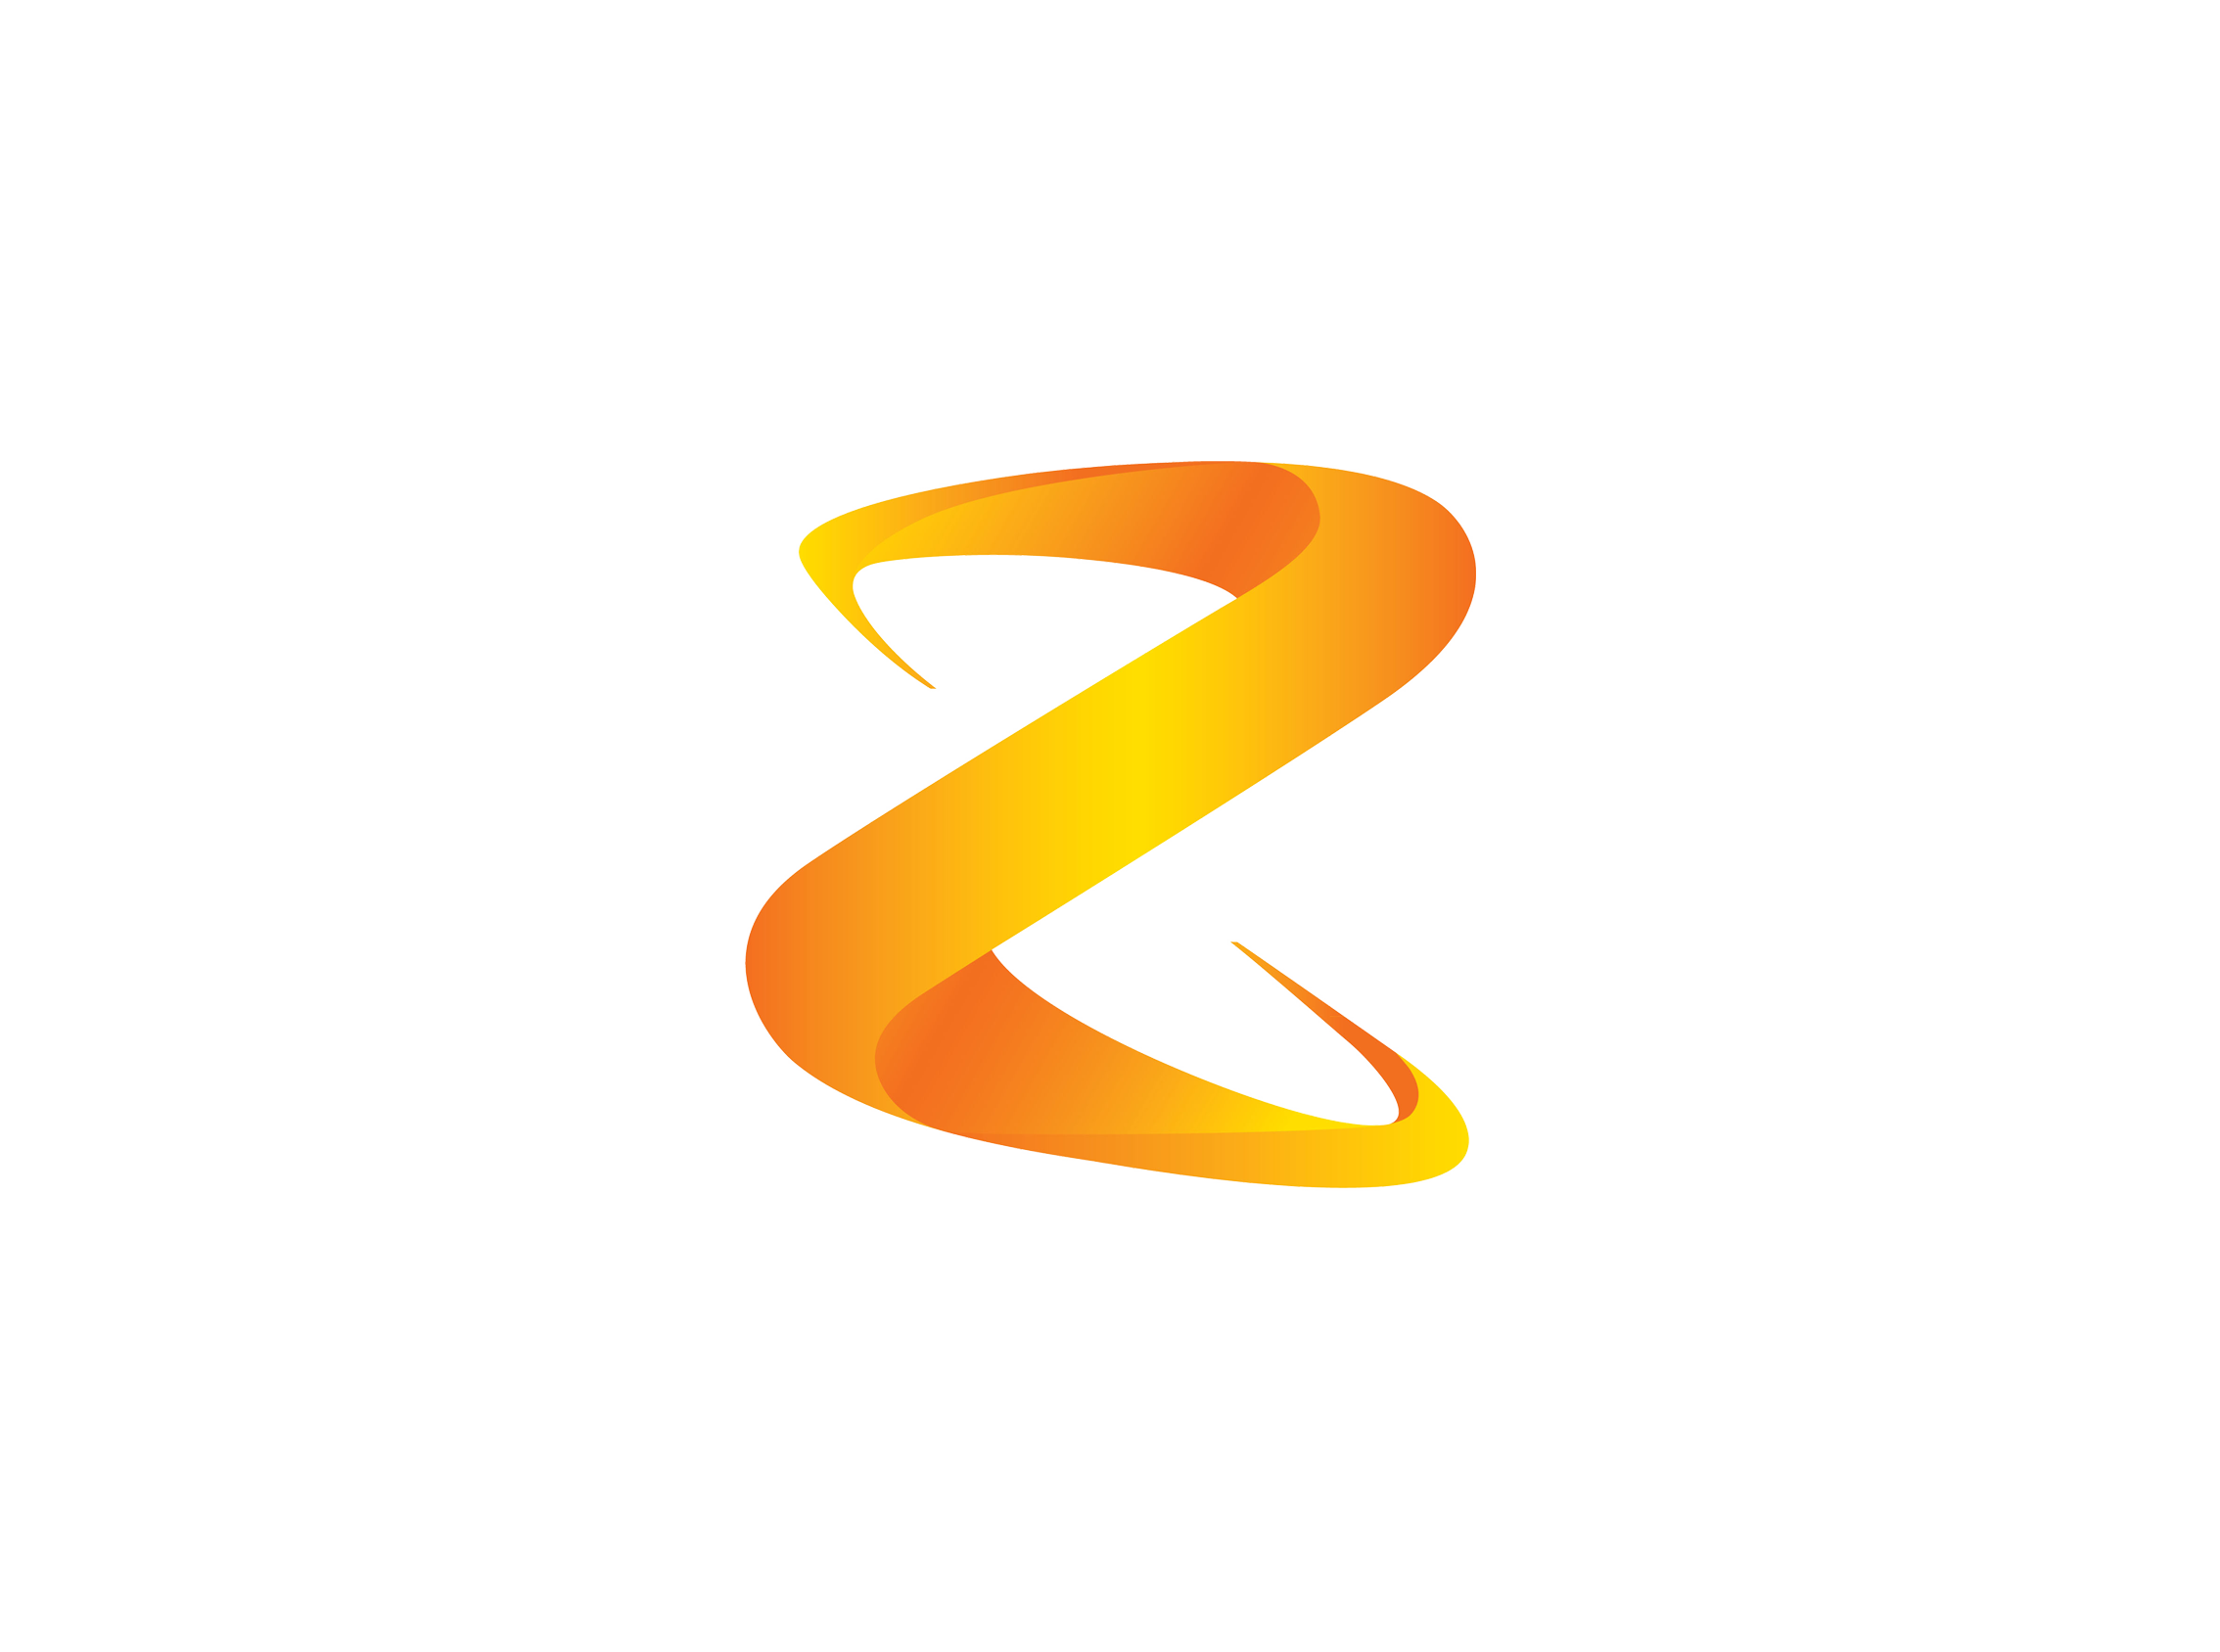 Transparent z logo. Keywords design corporate d